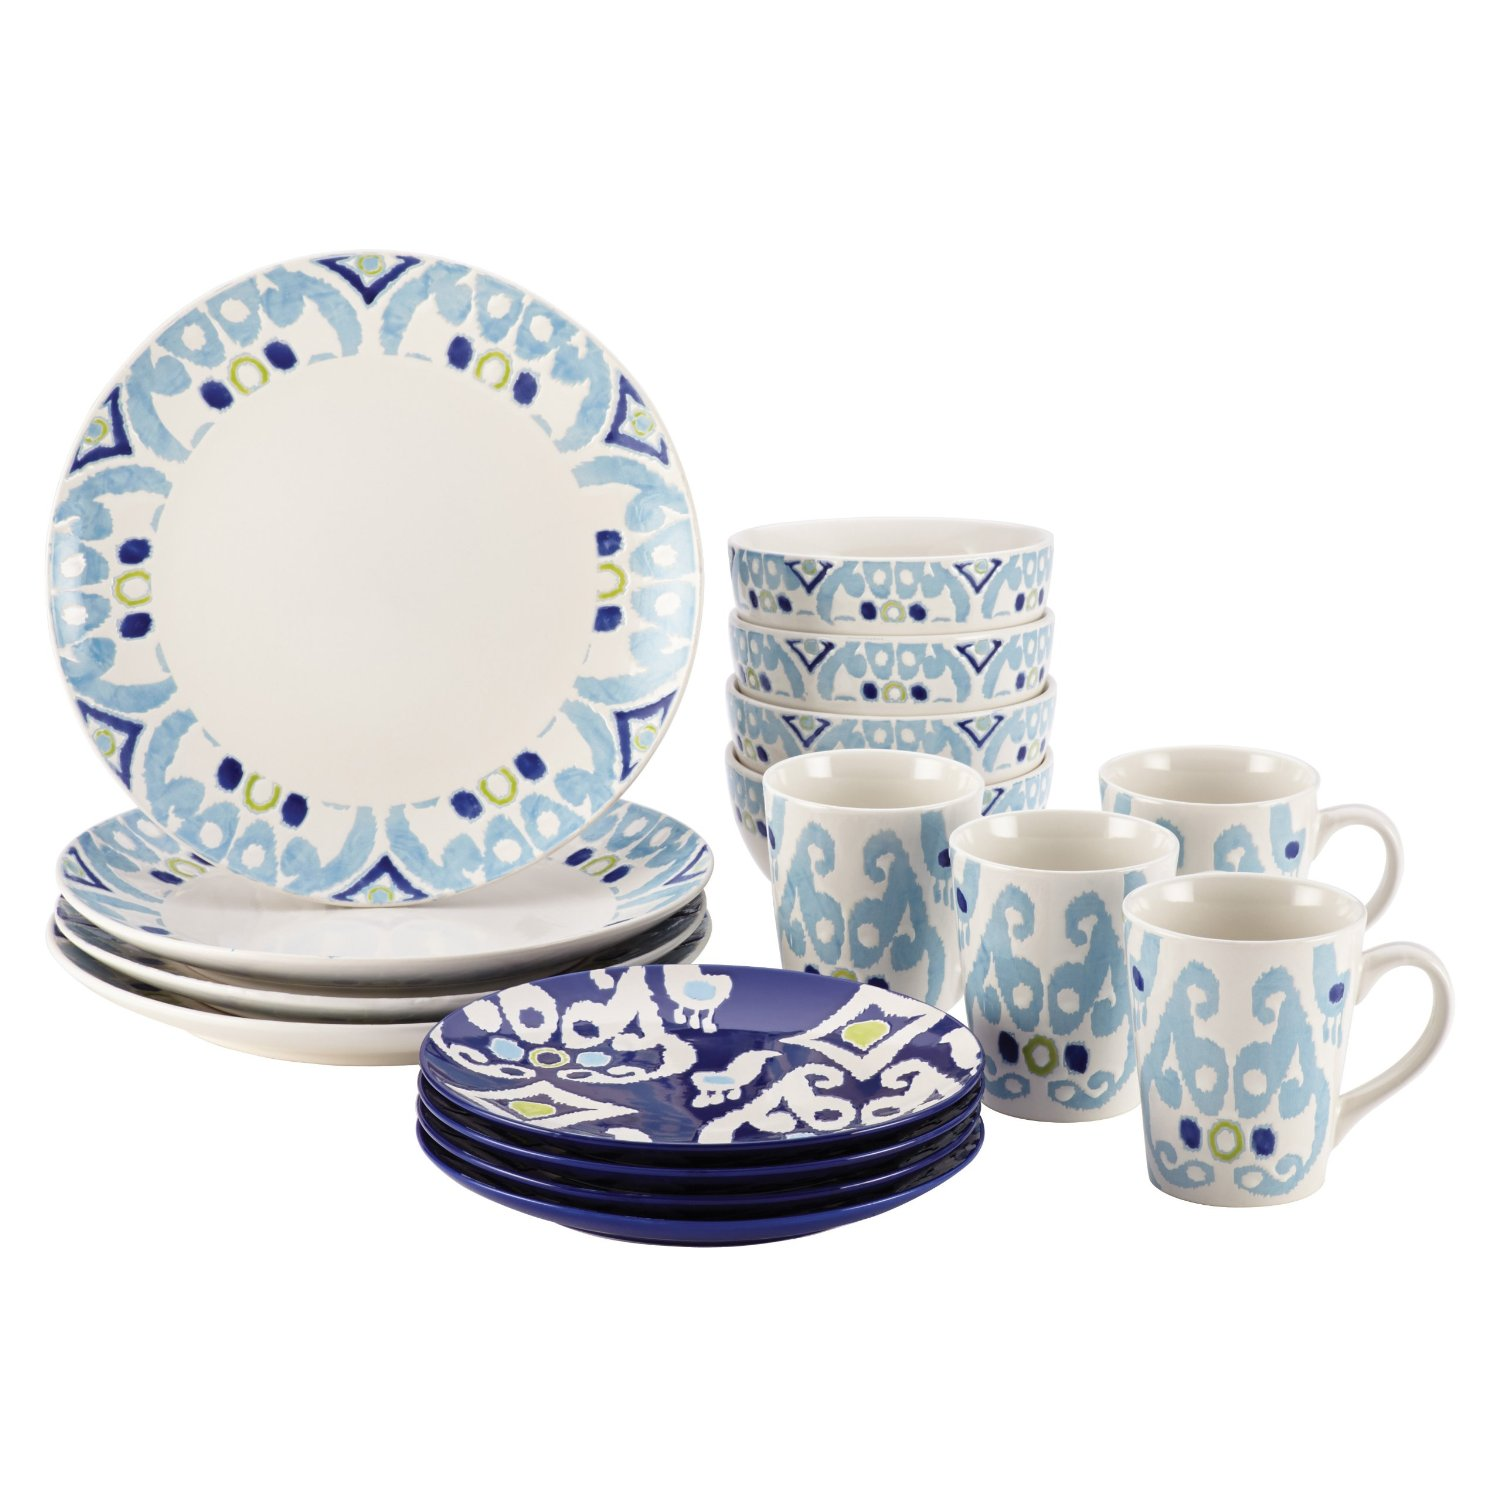 sc 1 st  Ey Yaa & Top 10 best dinnerware sets